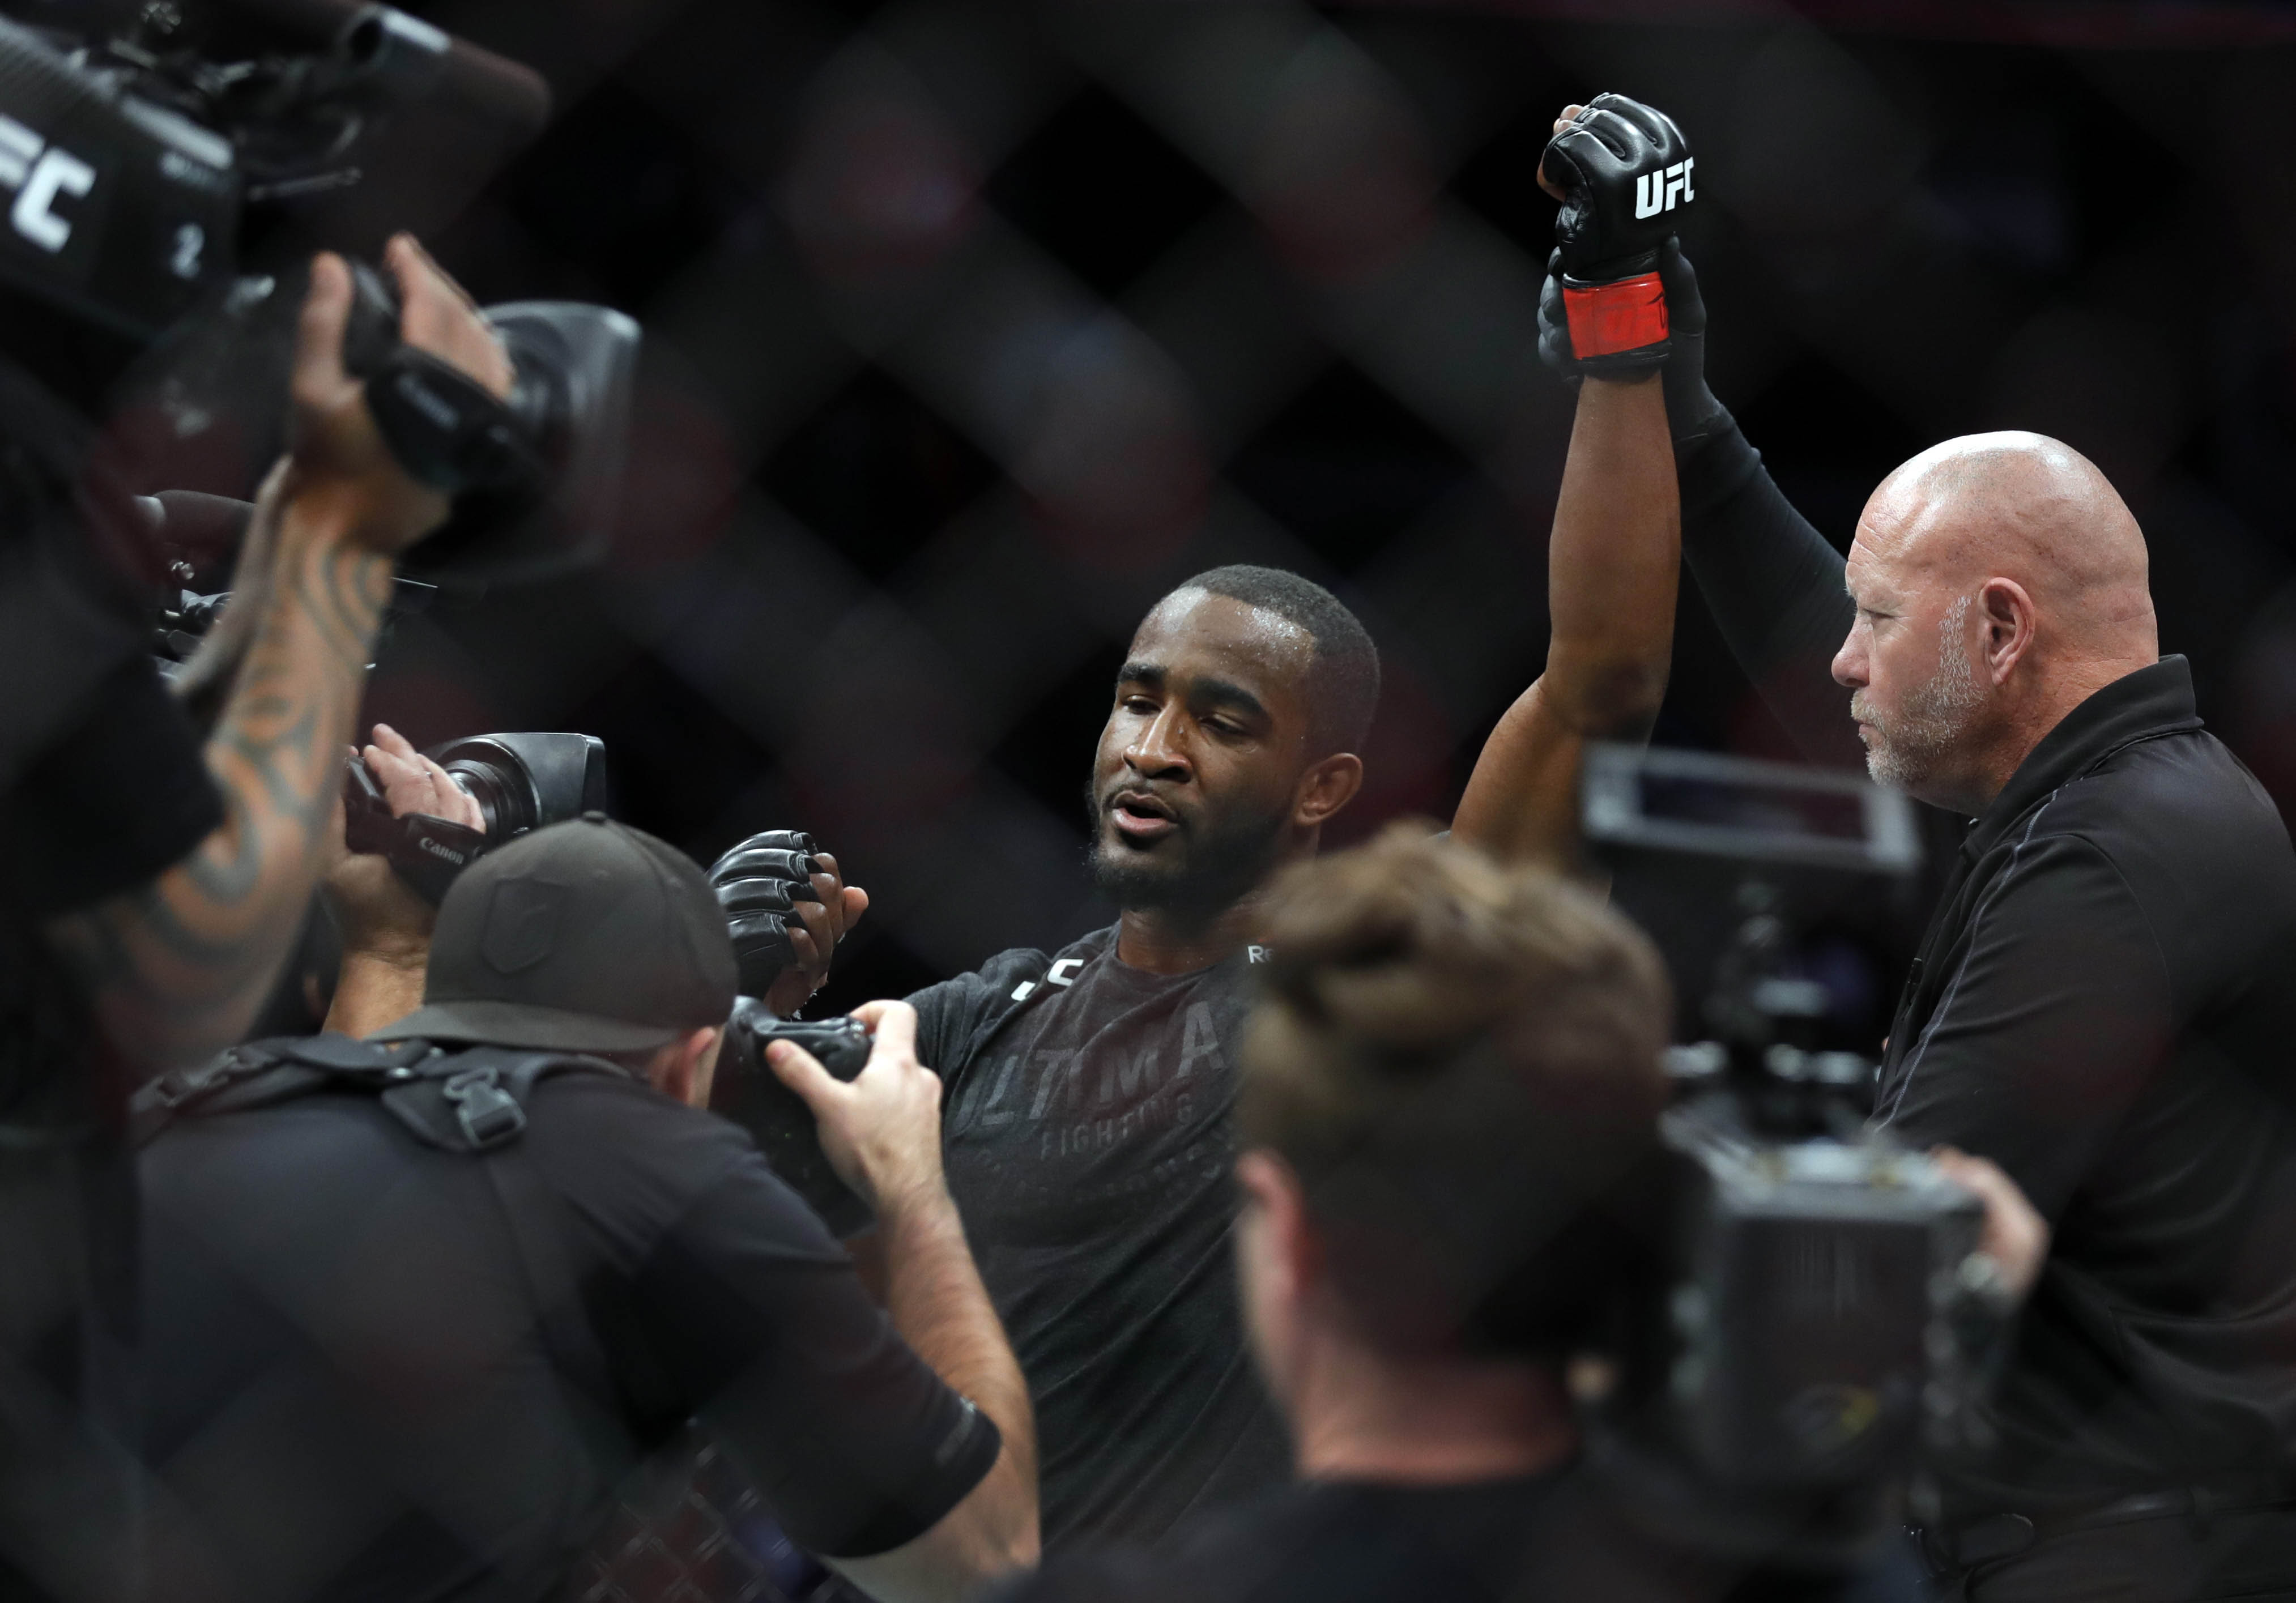 Geoff Neal poses after defeating Mike Perry in a welterweight fight during UFC 245 at T-Mobile Arena on December 14, 2019 in Las Vegas, Nevada. Neal won the fight with a first-round TKO. (Photo by Steve Marcus/Getty Images)